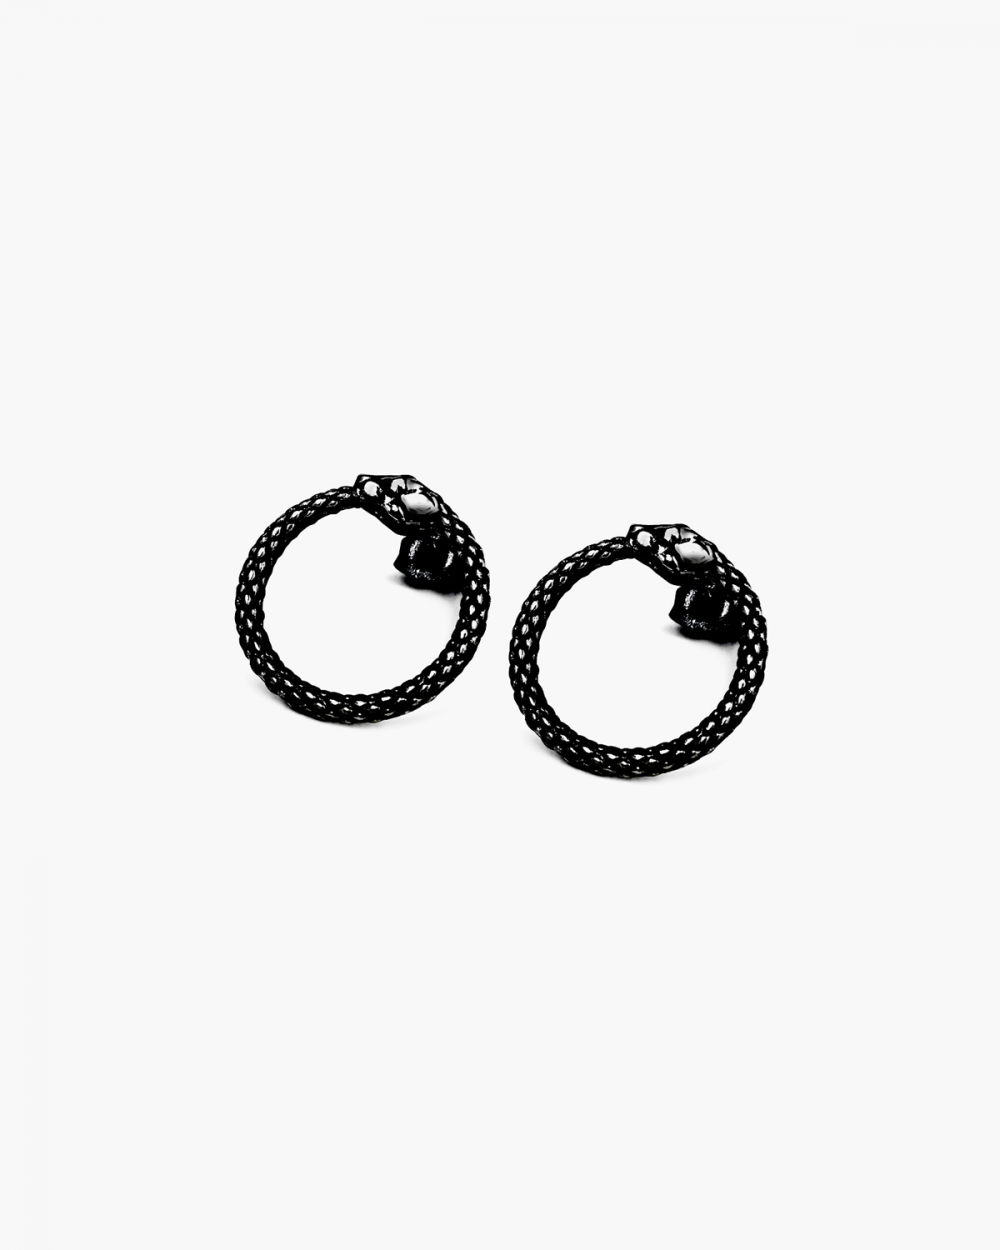 Earrings RUTHENIUM OUROBOROS PAIR EARRINGS NOVE25